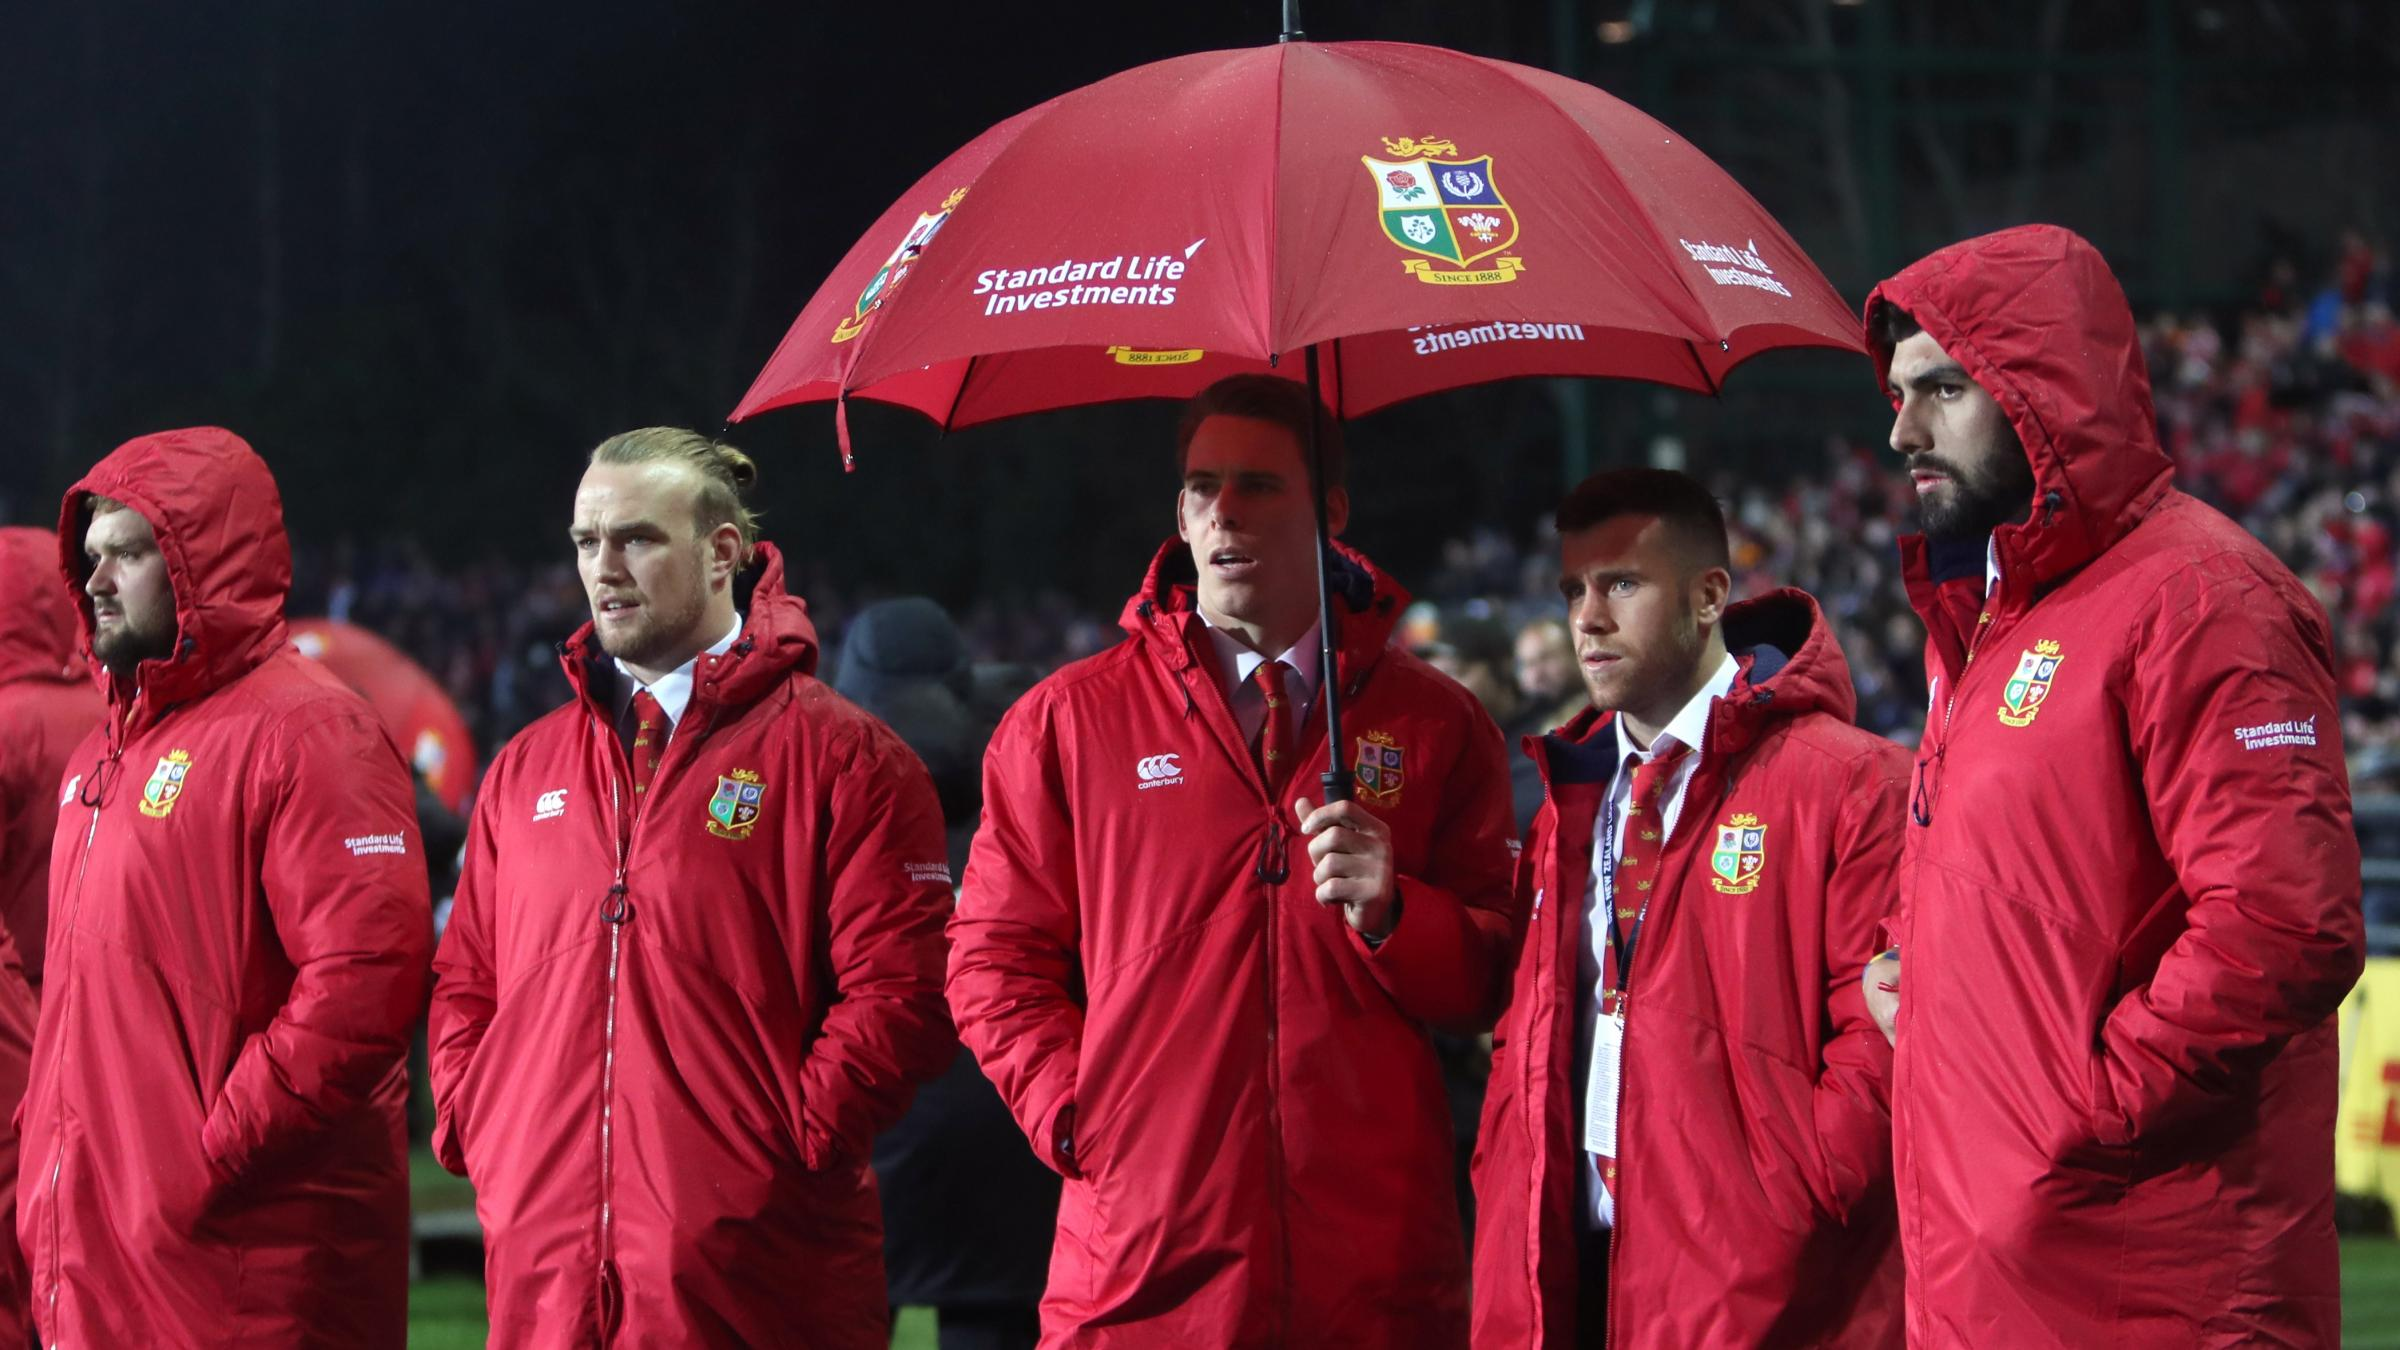 Gatland drafts in reserves for Lions; Donald to lead Chiefs